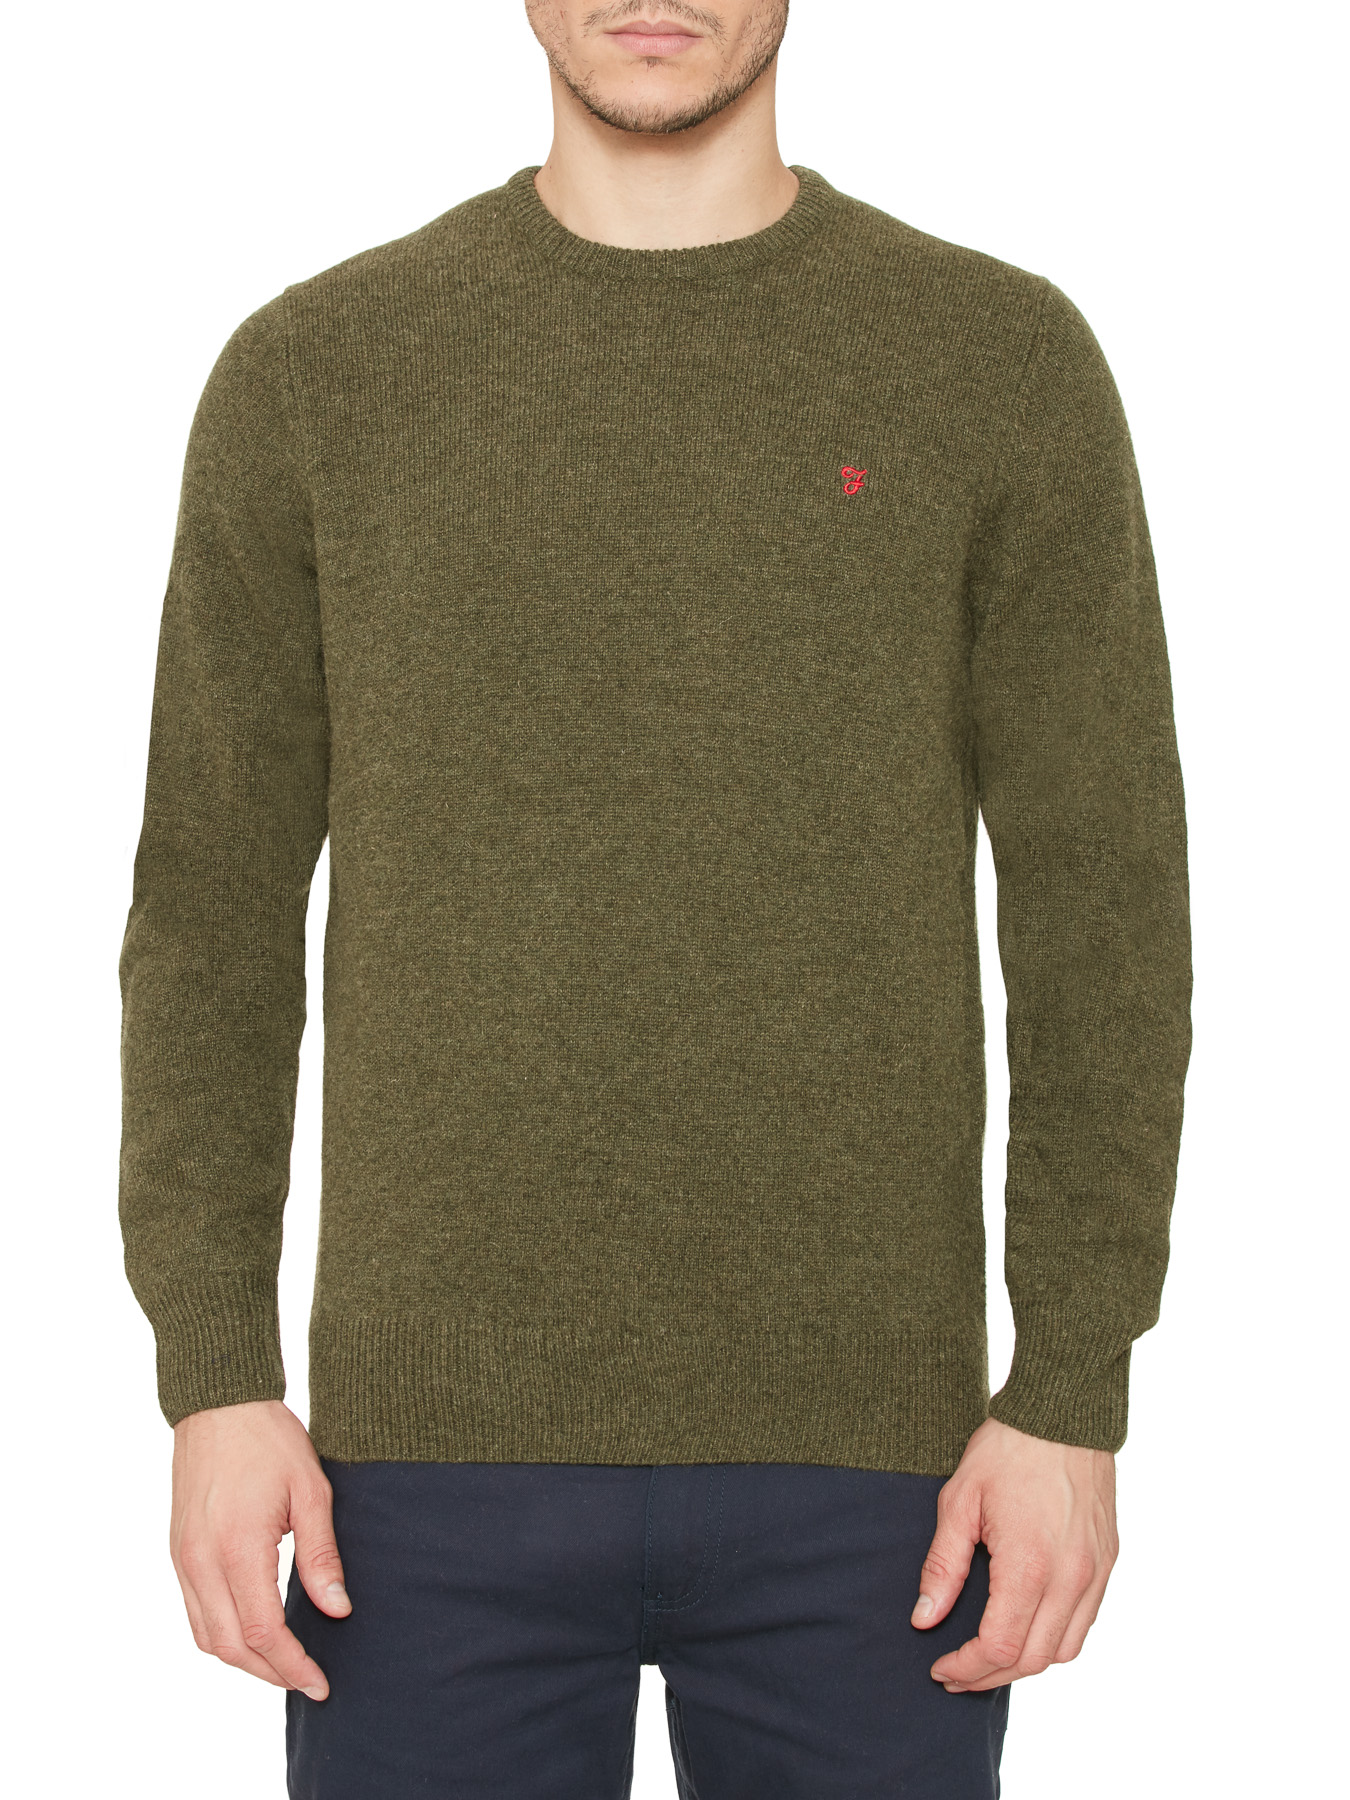 Farah Vintage Evergreen Lowther lambswool crew neck jumper